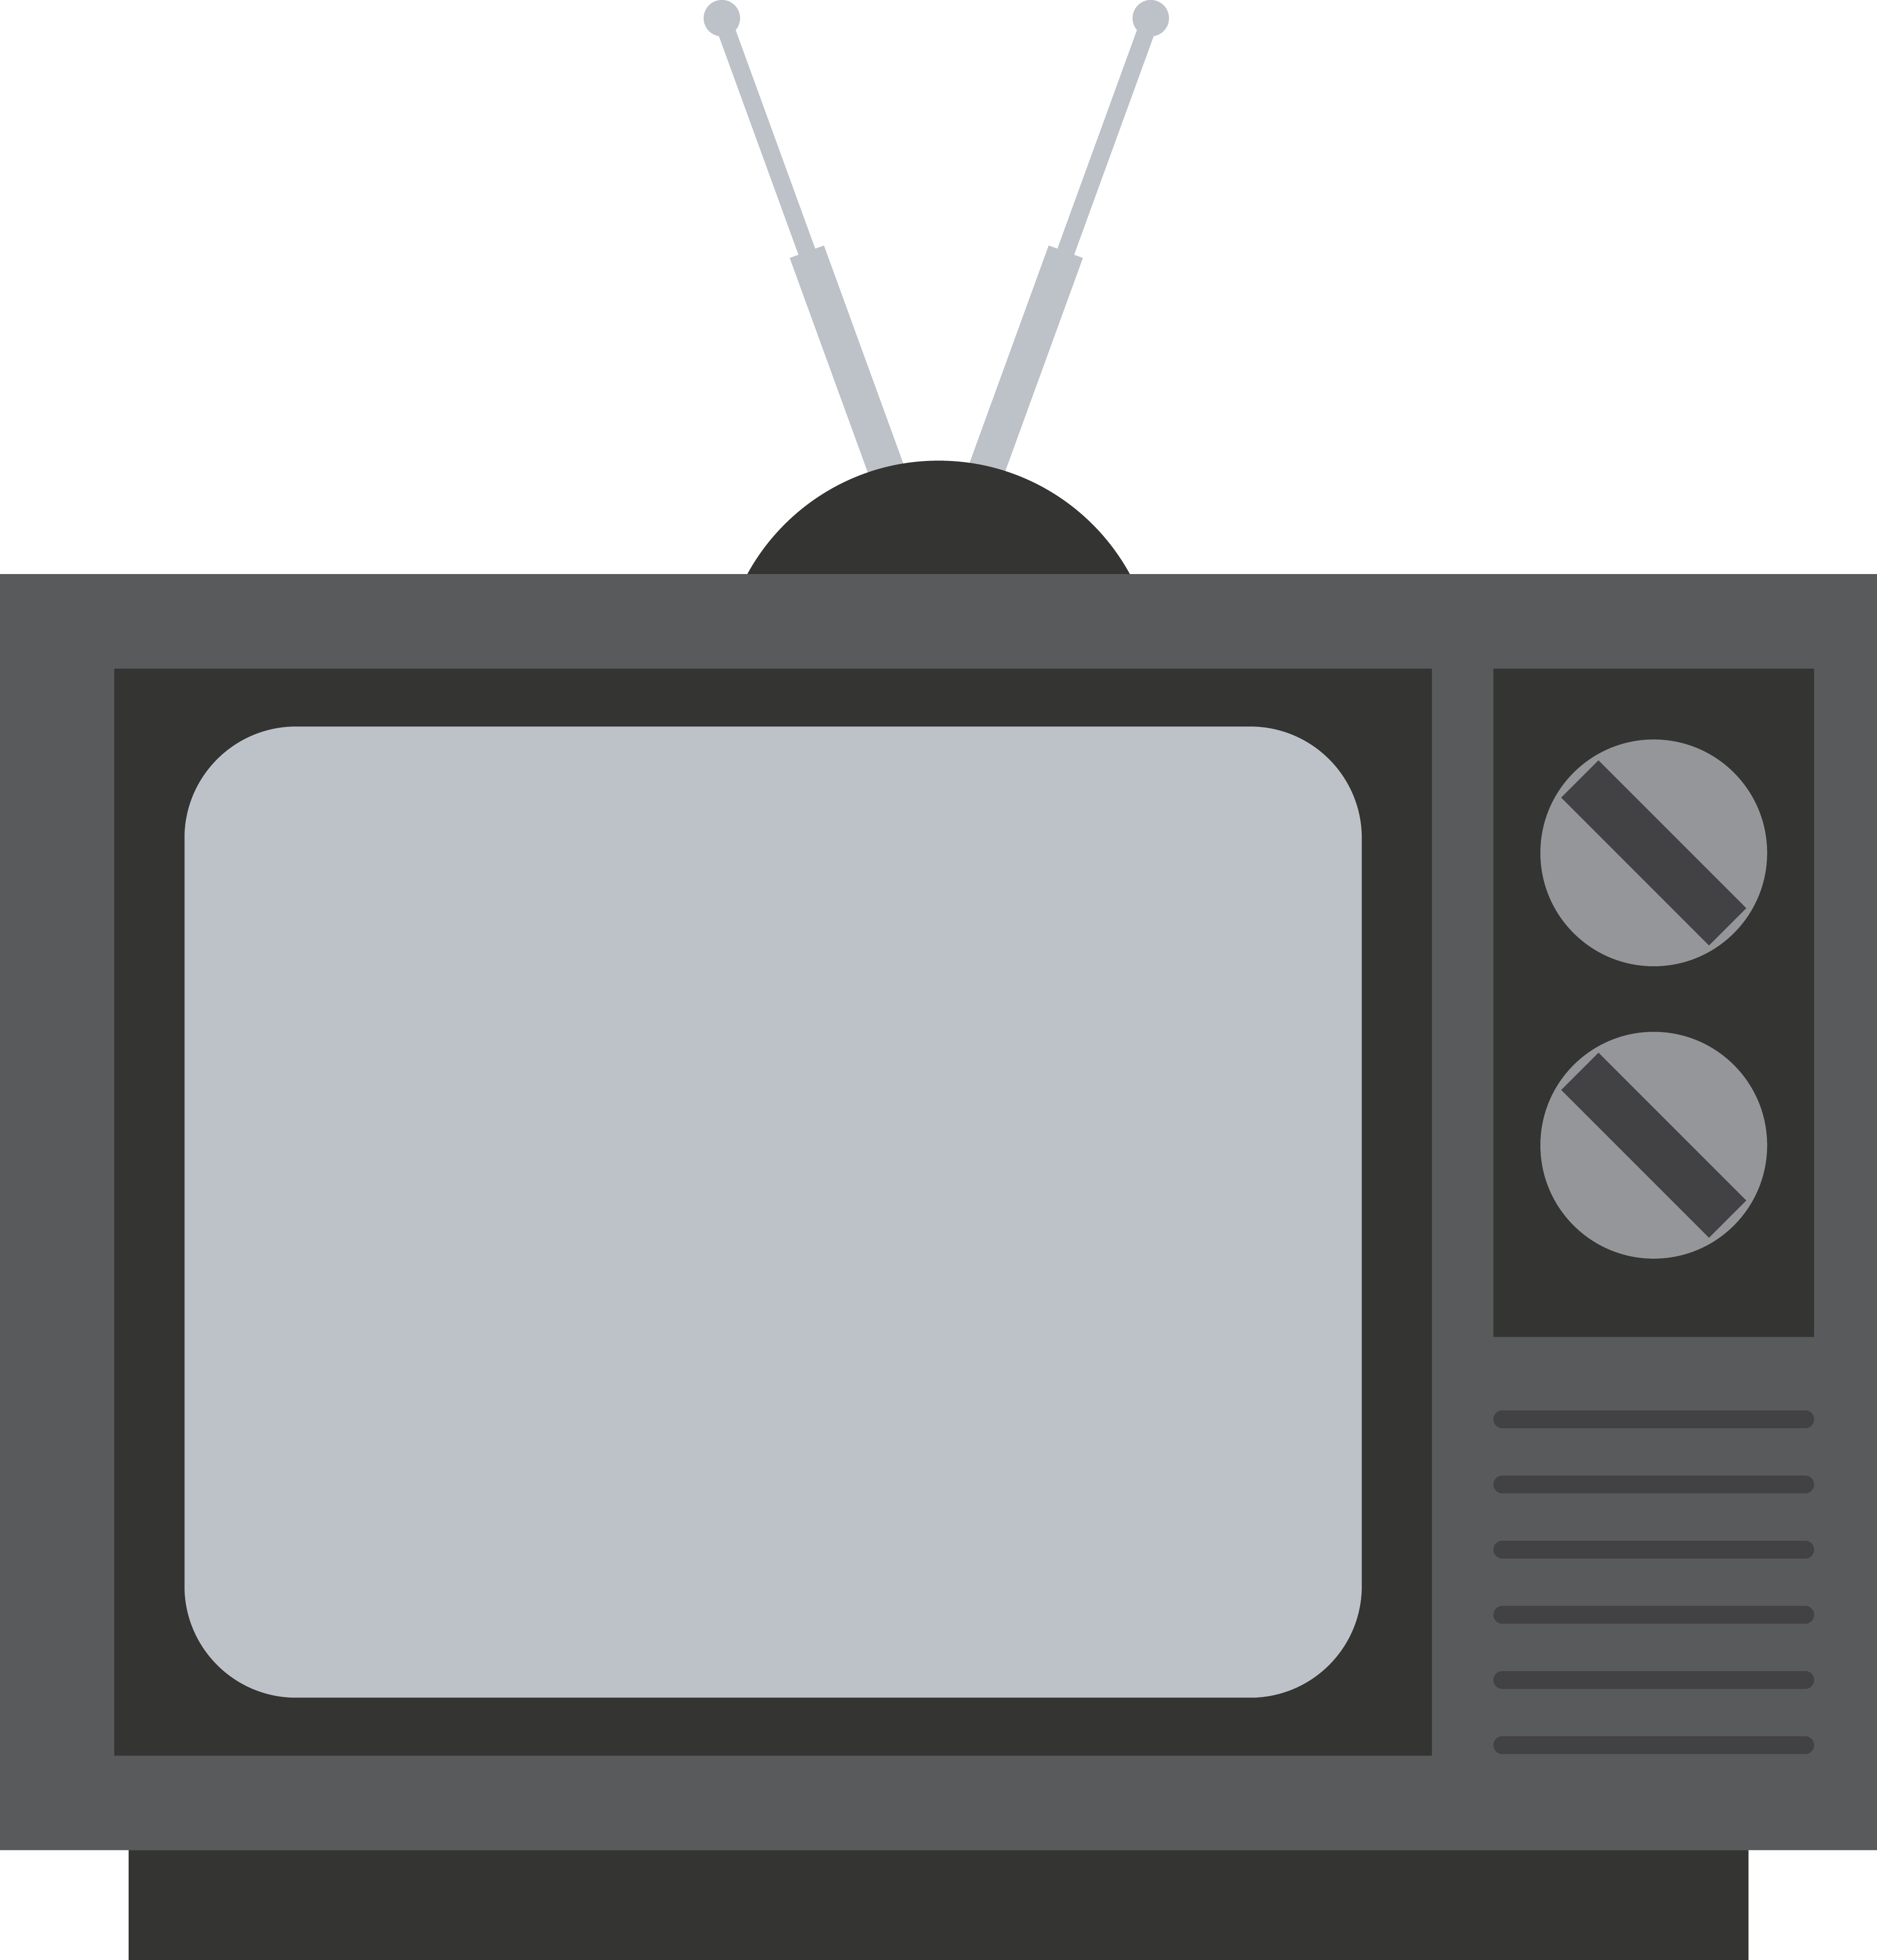 Old Television PNG Image Olds, Black and white, Television